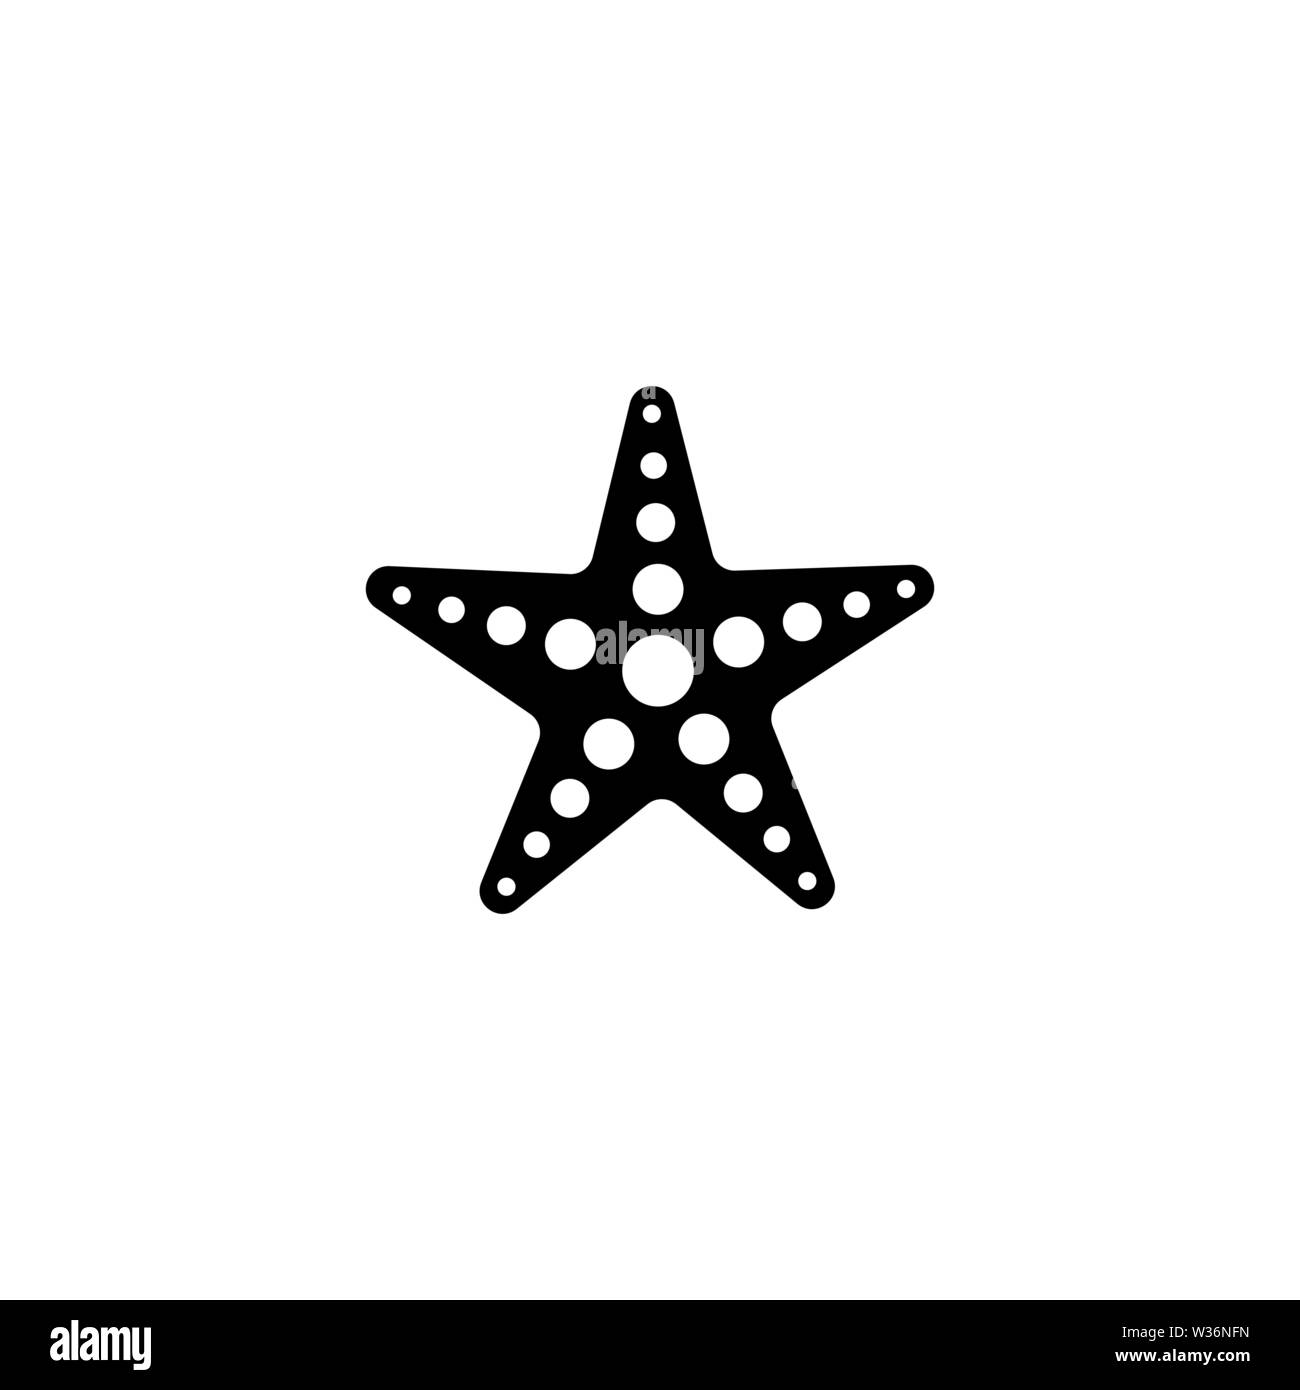 Starfish vector icon. Simple flat symbol on white background - Stock Image